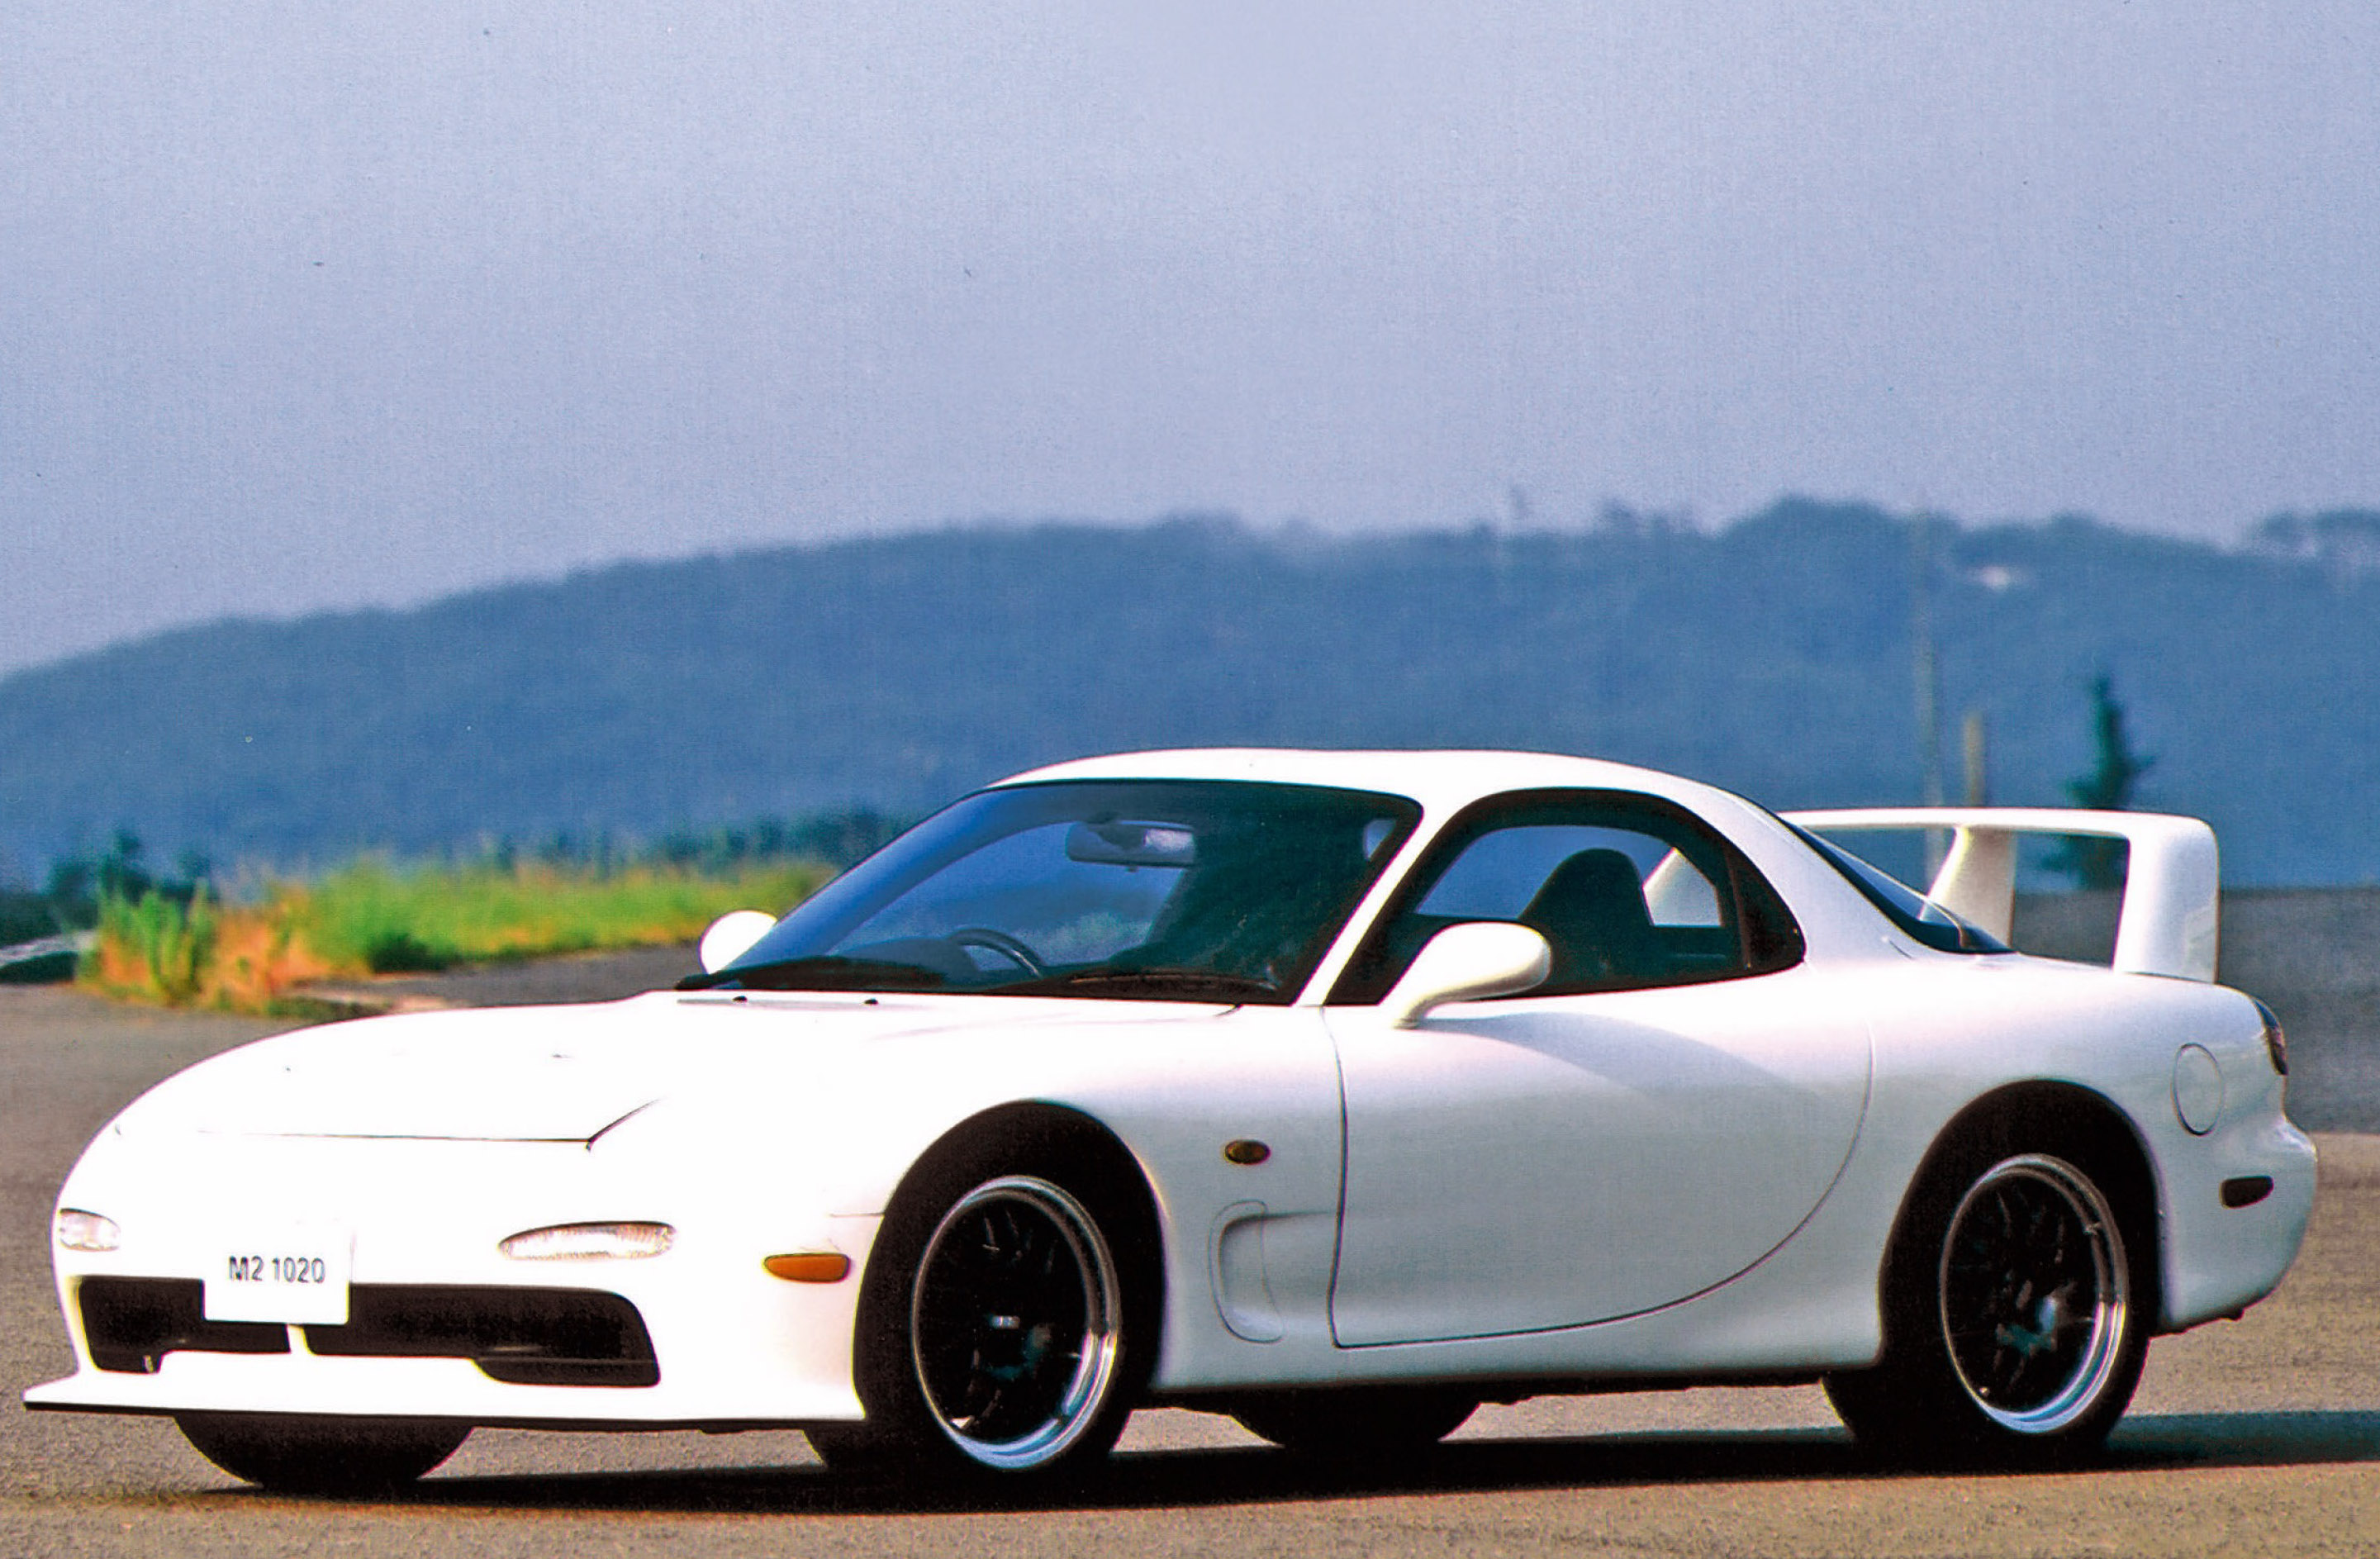 The RX-7 now has a strong cult following